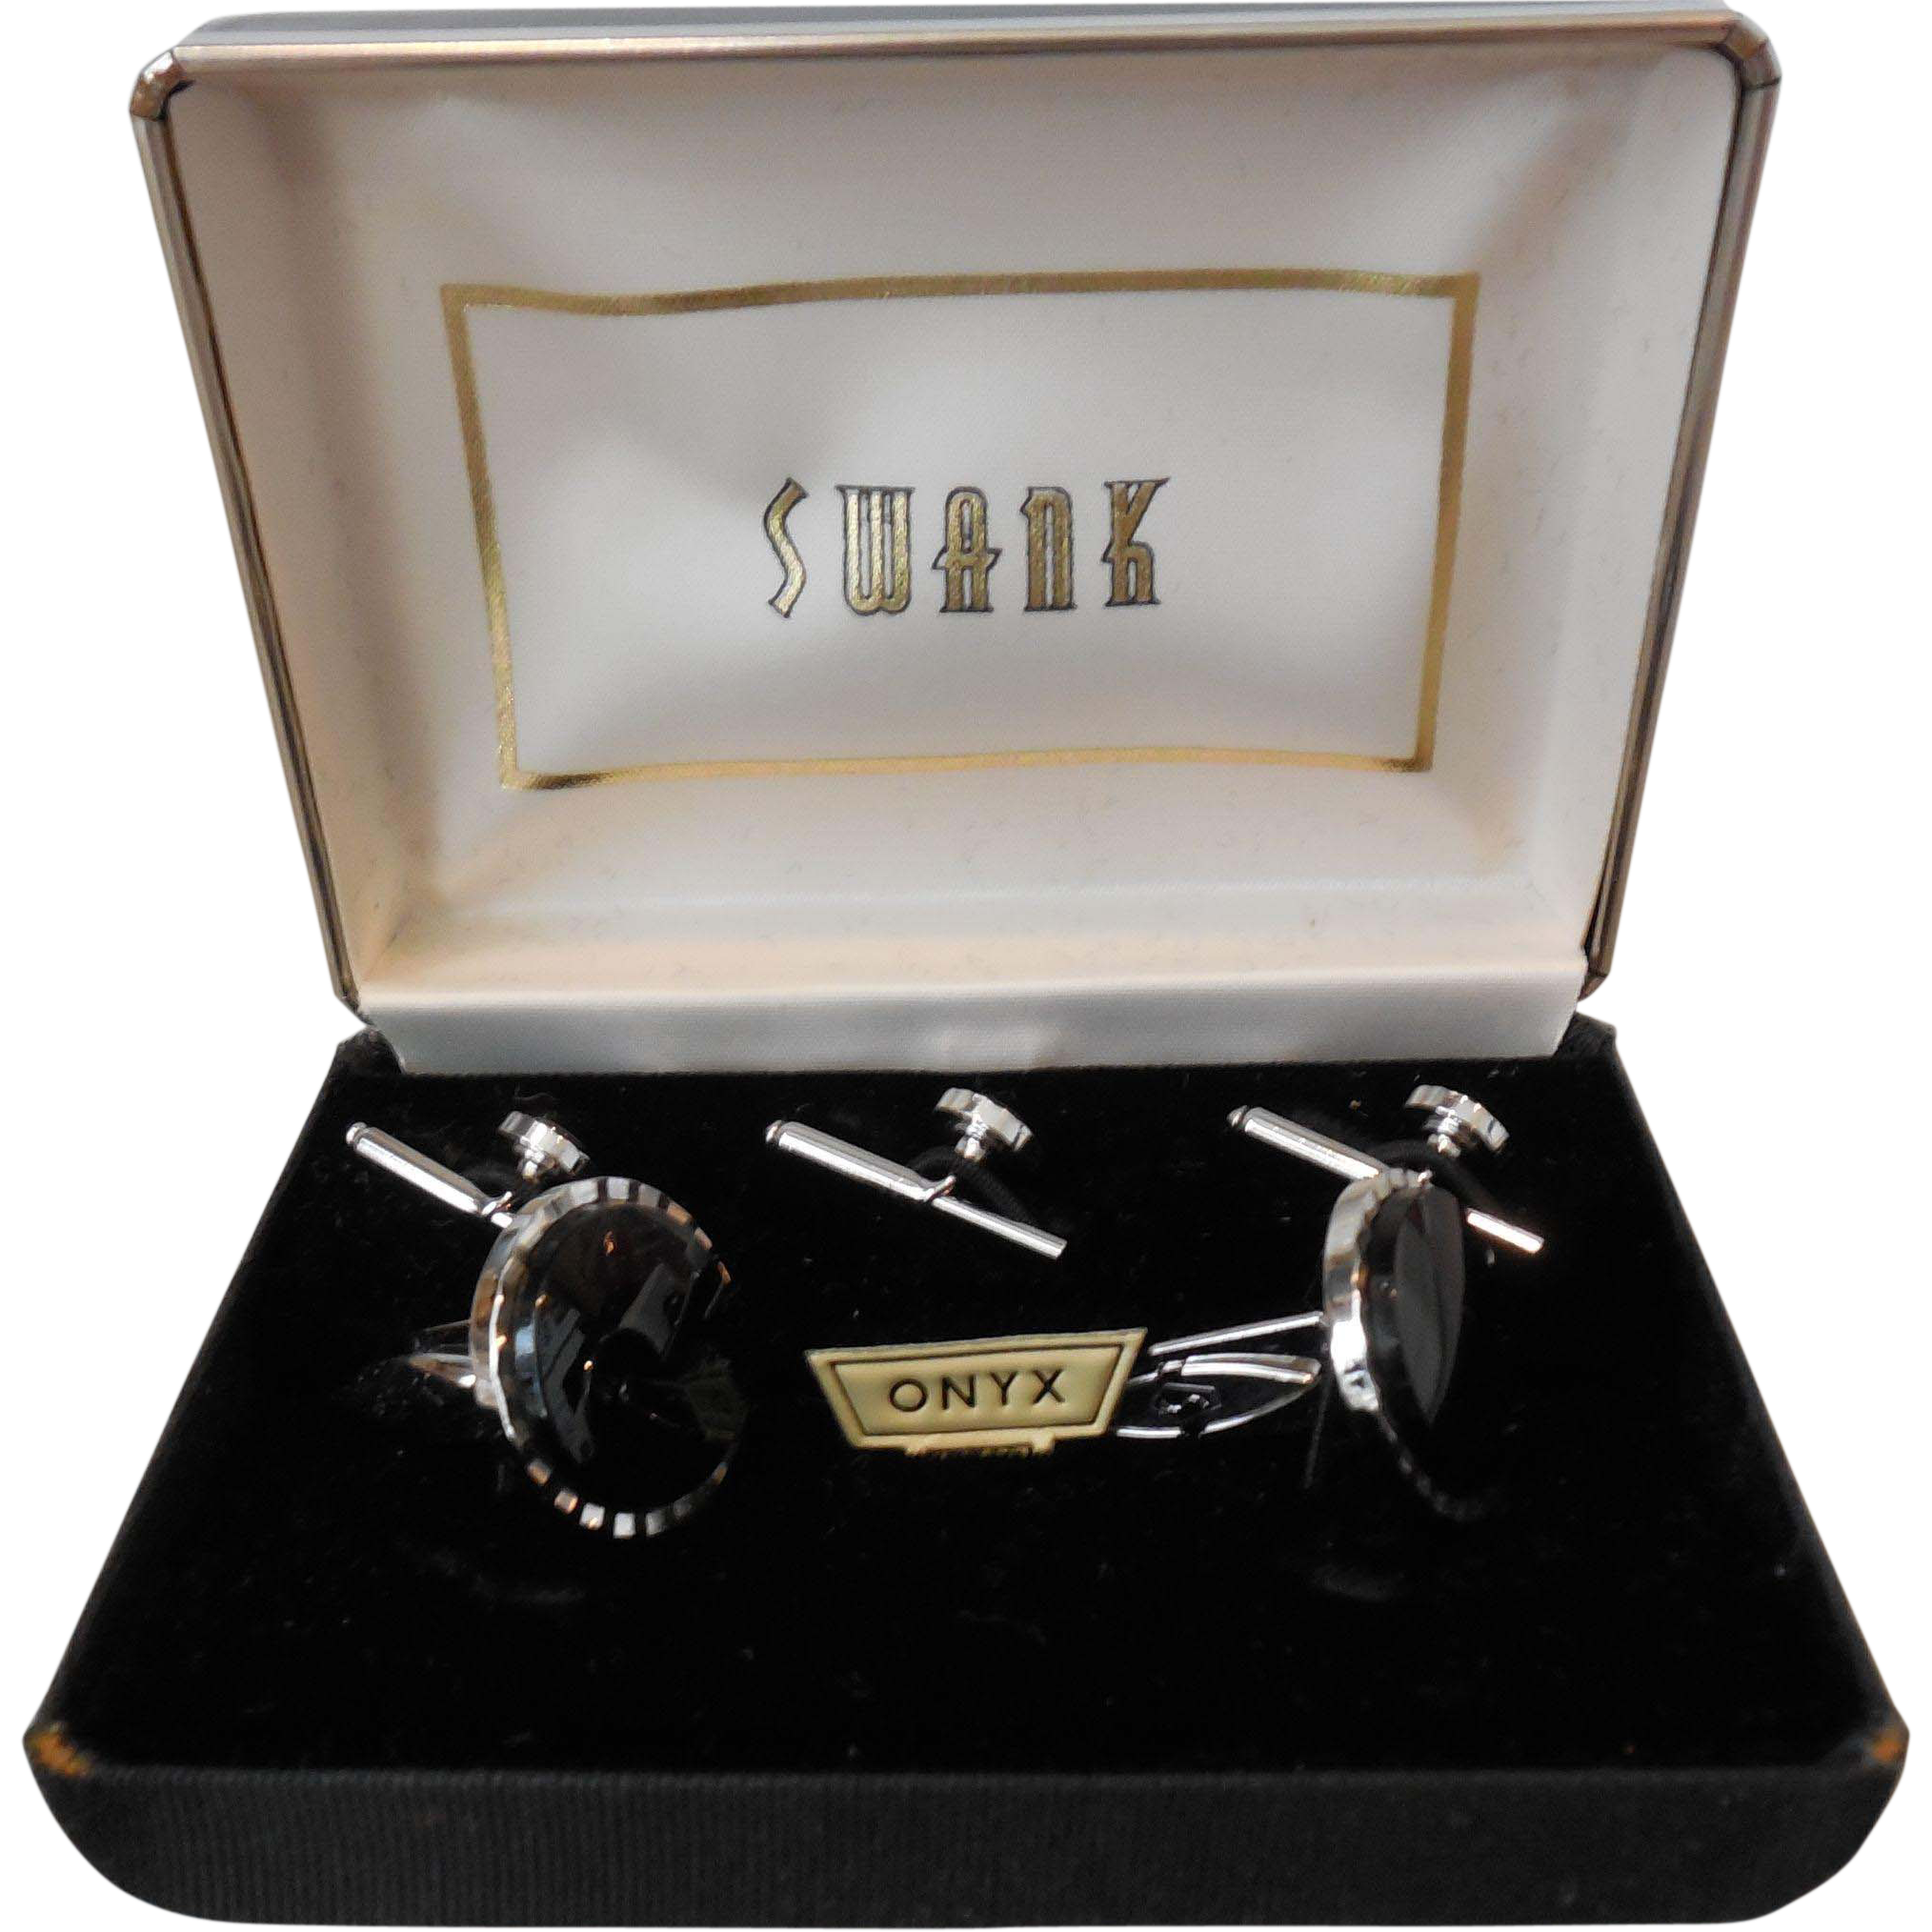 Vintage Swank Onyx Tuxedo Set in Original Box